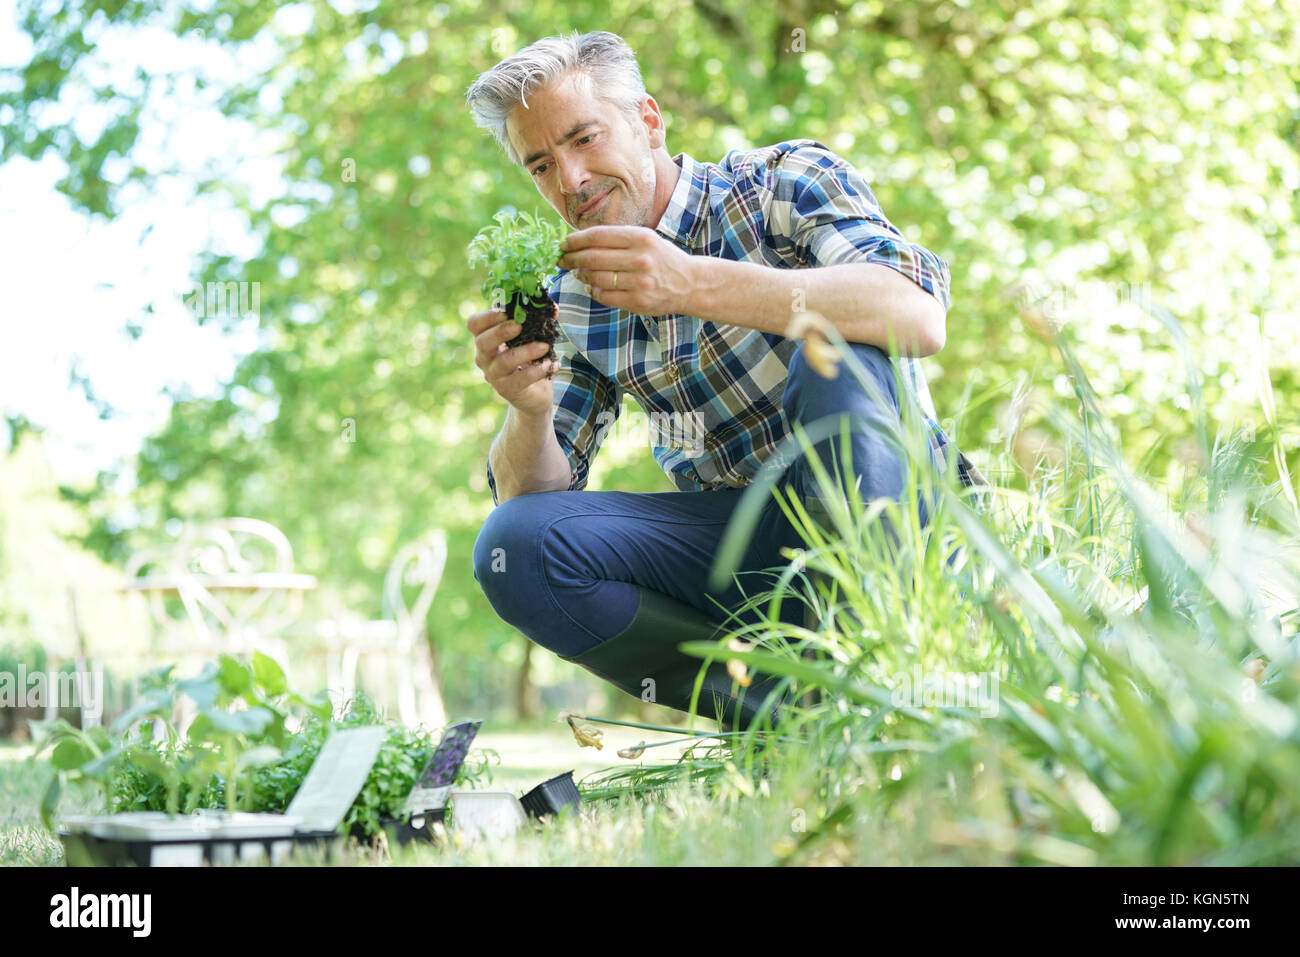 Mature man in garden planting new flowers - Stock Image